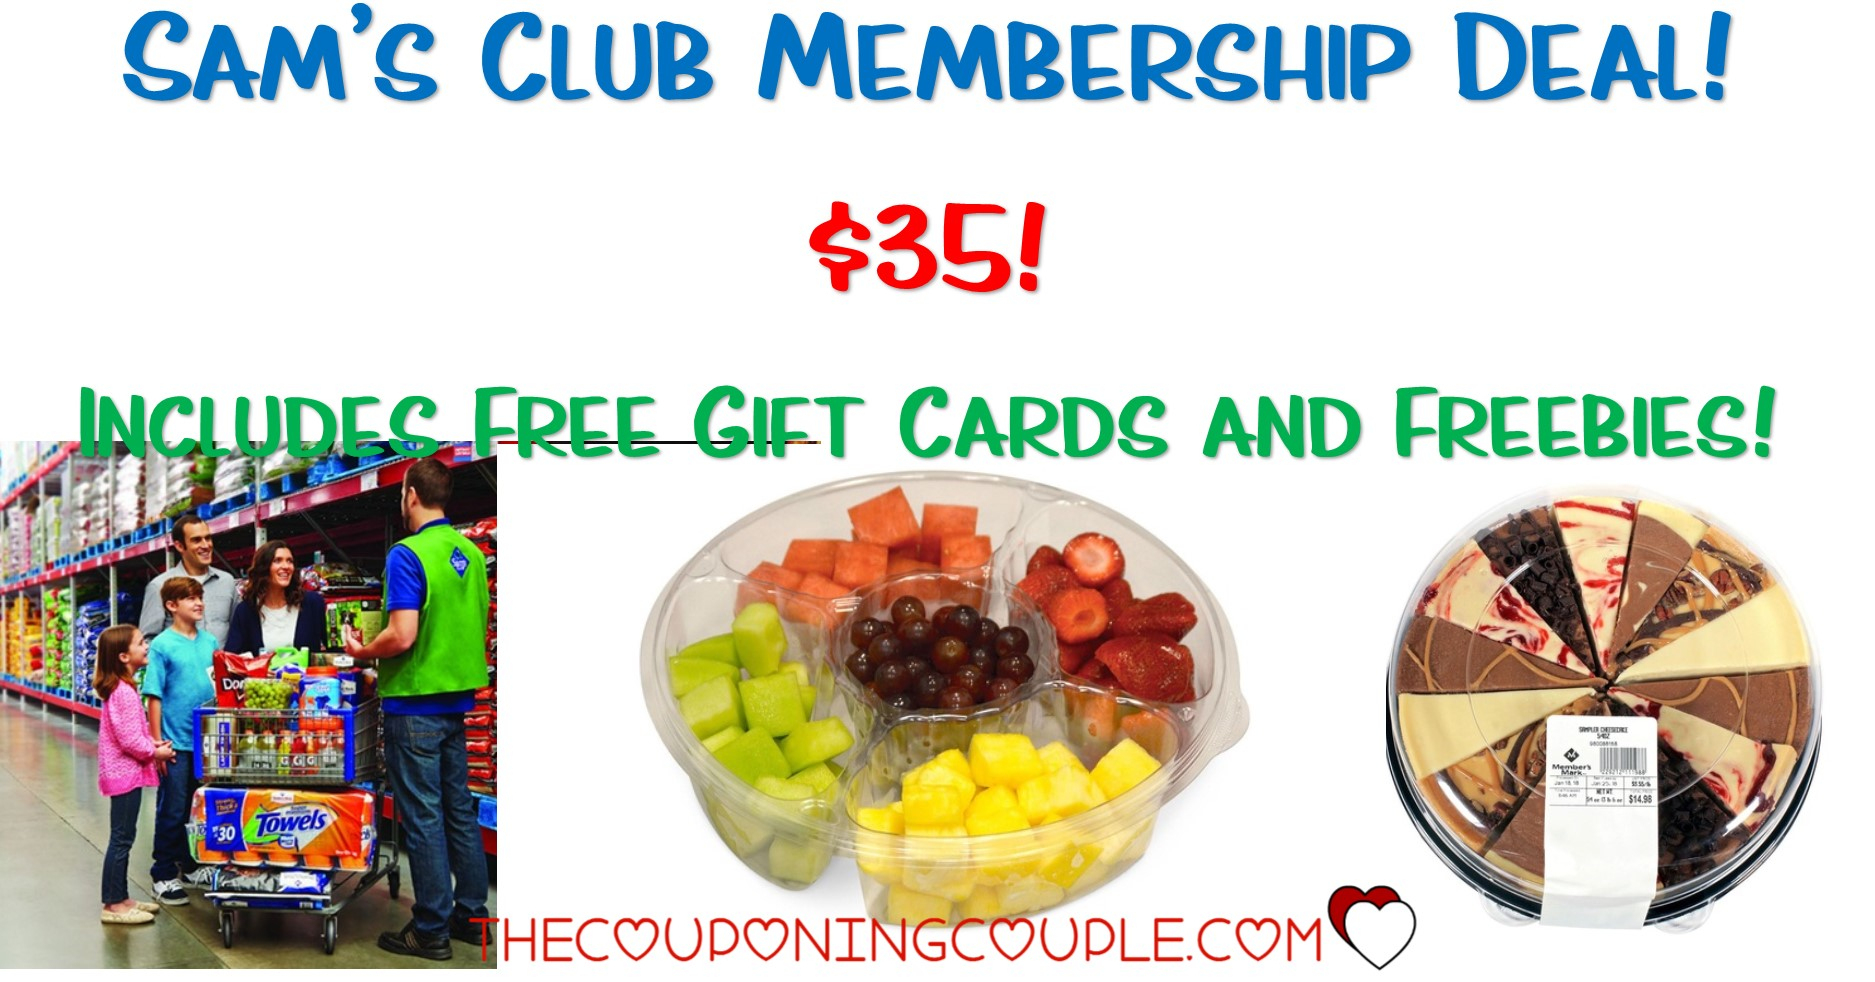 Hot Sams Club Membership Deal! $35! Includes Free Gift Cards + Freebies! - Free Printable Coupons For Fantastic Sams